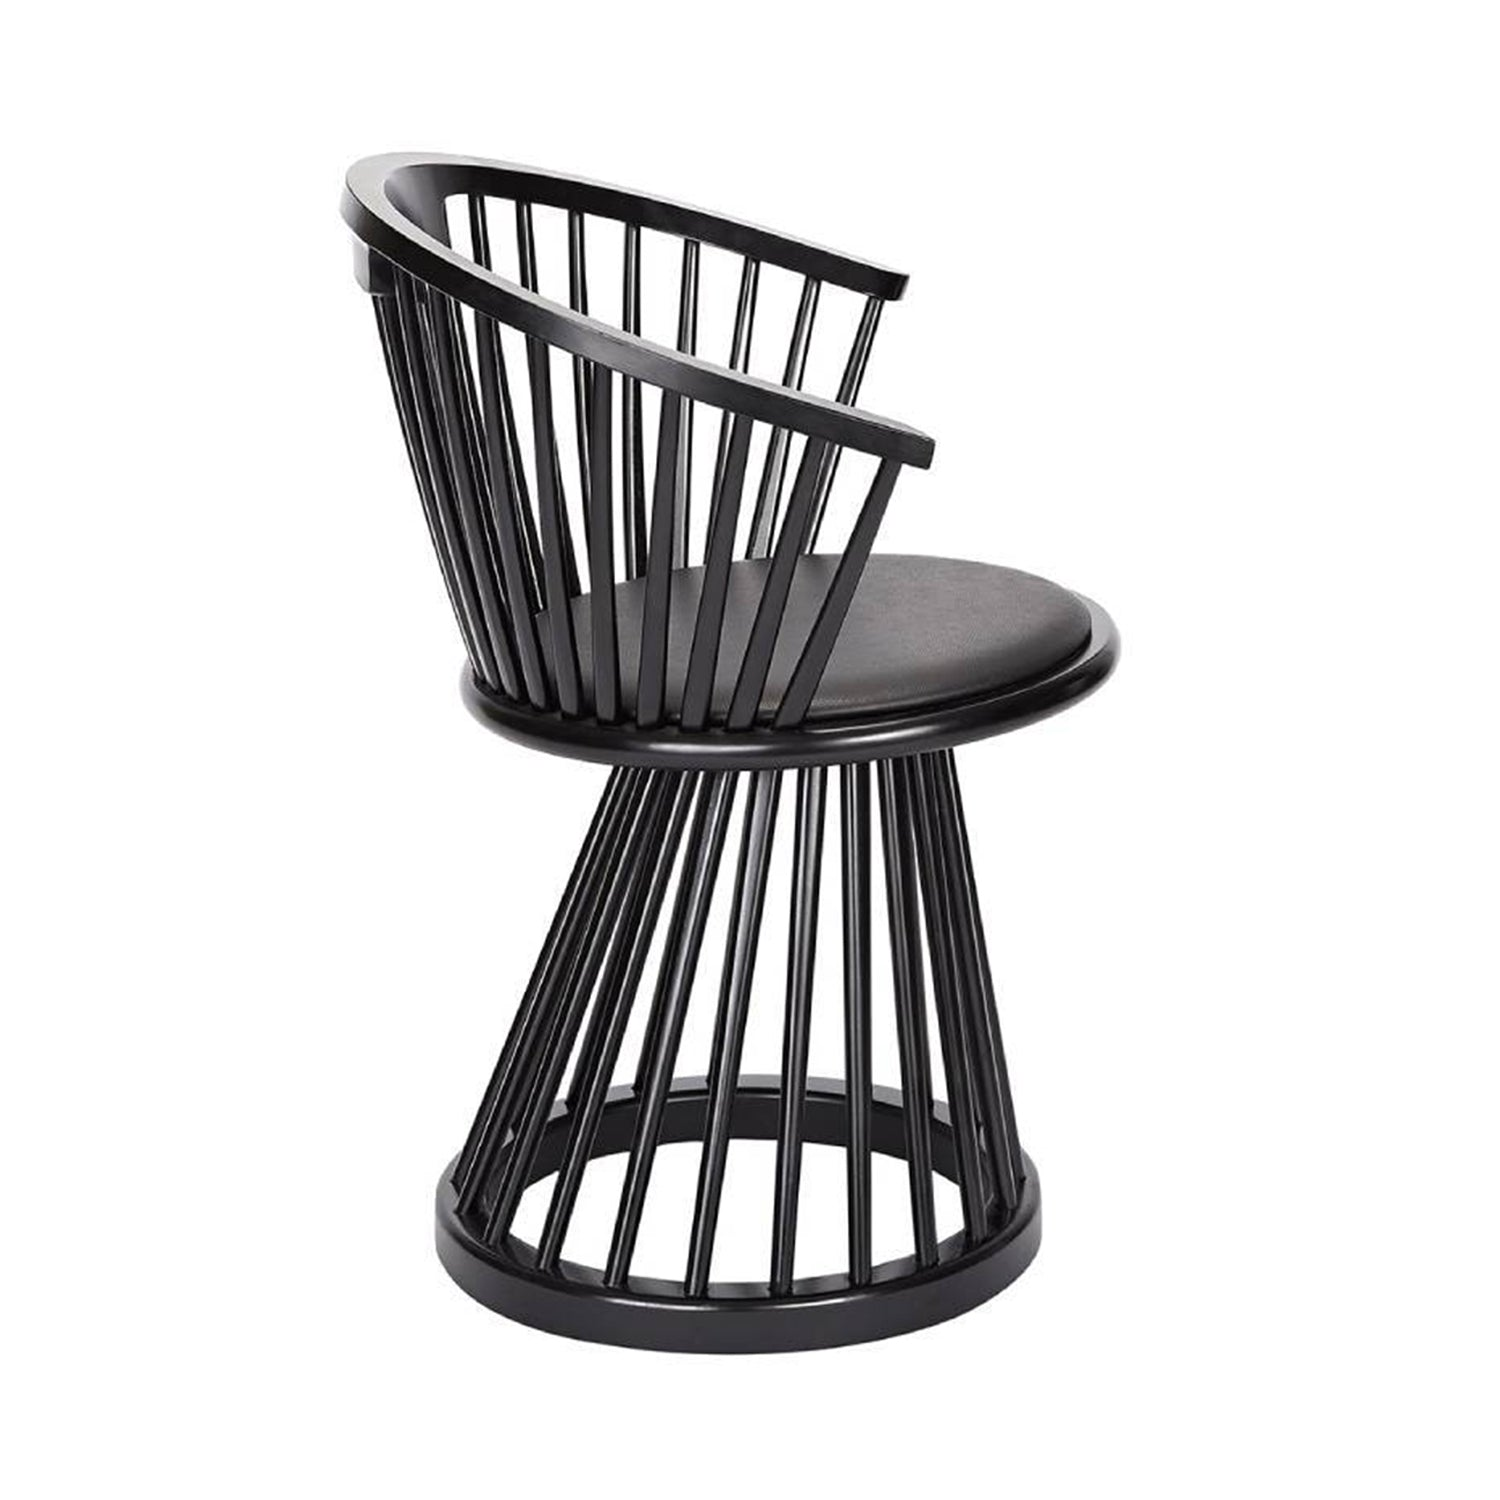 Fan Dining Chair: Black